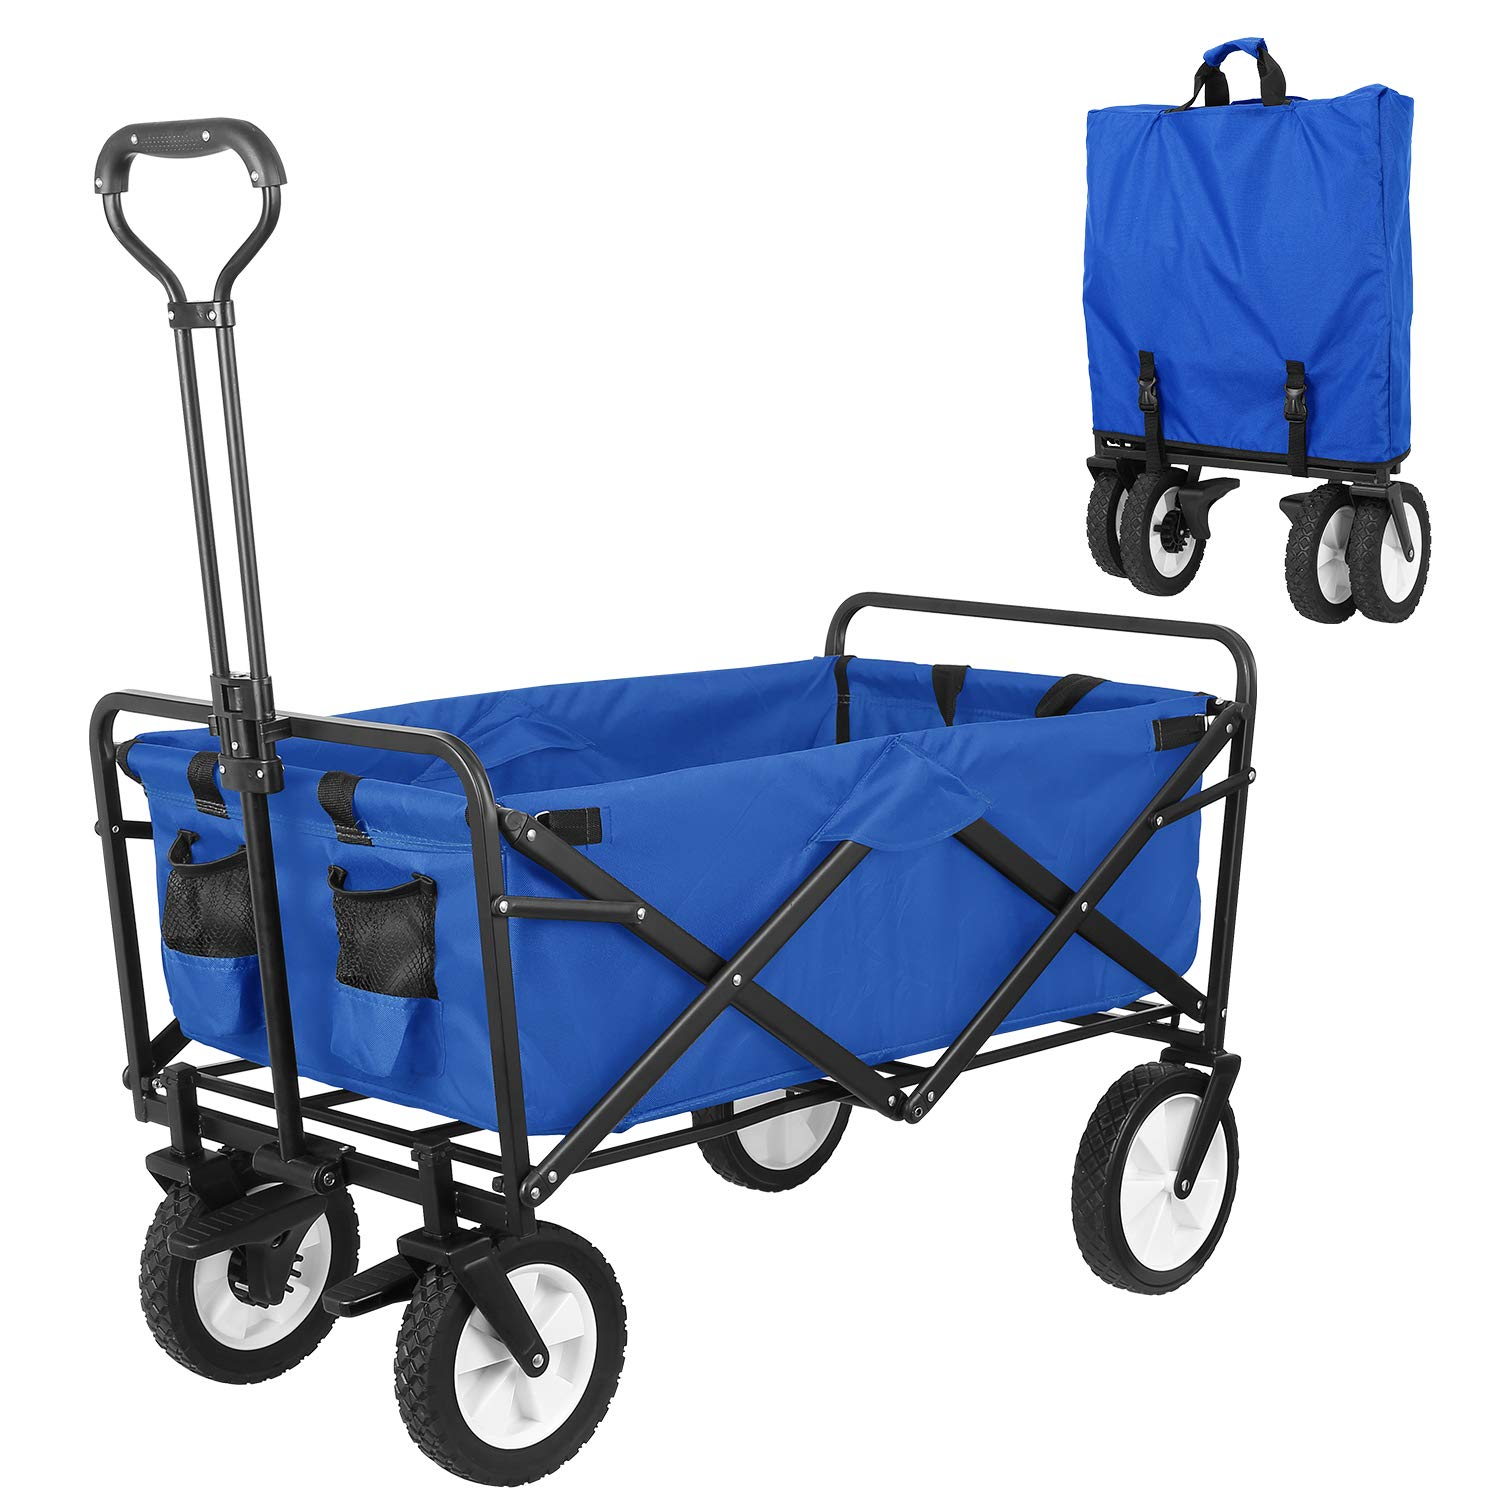 HEMBOR Collapsible Outdoor Utility Wagon, Heavy Duty Folding Garden Portable Hand Cart, with 8'' Rubber Wheels and Brake Wheels, Adjustable Handles and Double Fabric, for Shopping,Picnic,Beach (Blue) by HEMBOR